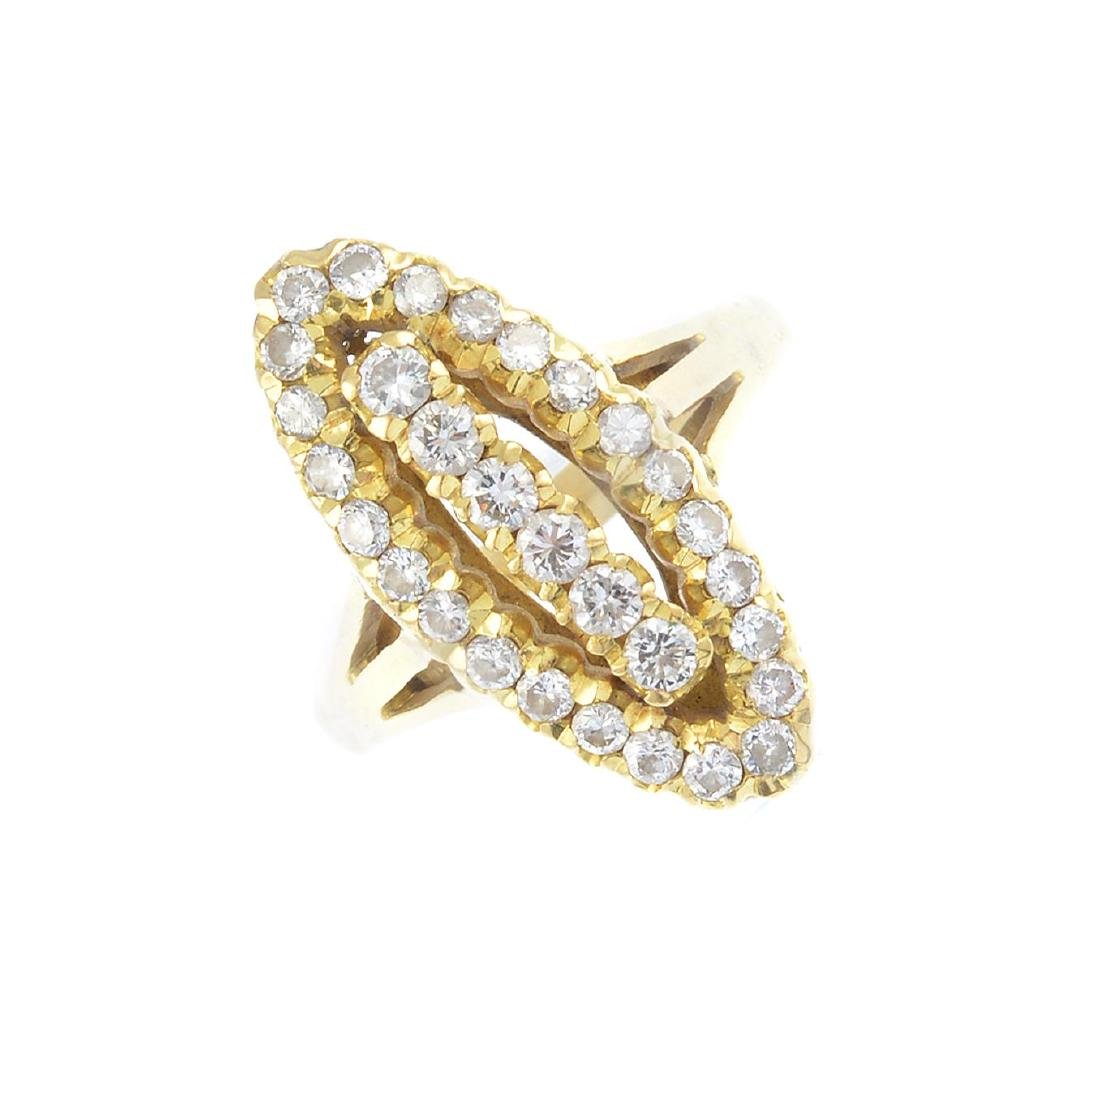 (104421) A diamond dress ring. Of marquise-shape